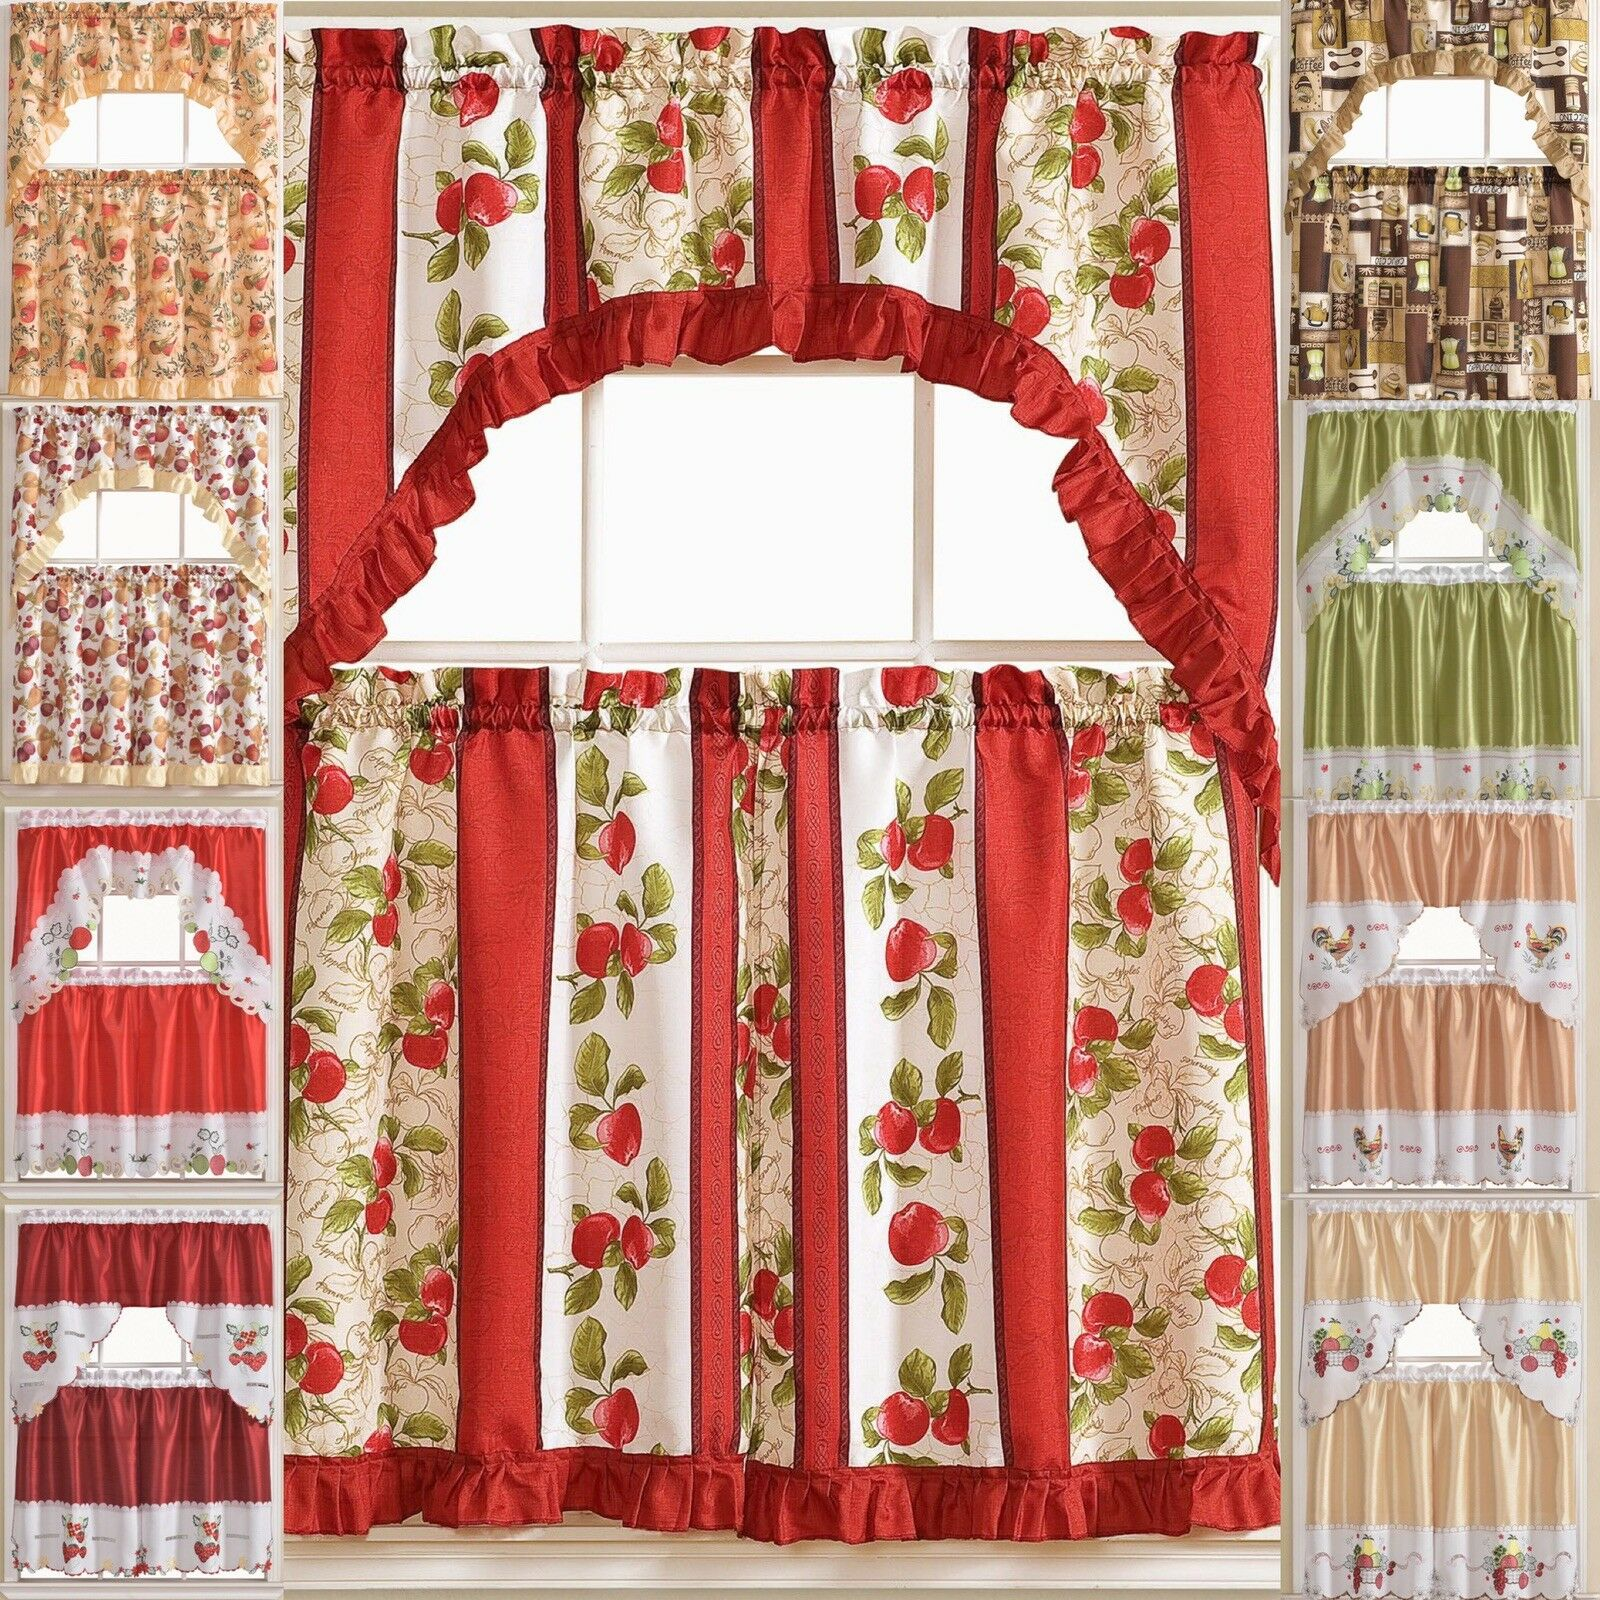 Embroidered Ladybug Meadow Kitchen Curtains 24 Tier Swag Valance Set For Sale Online Ebay